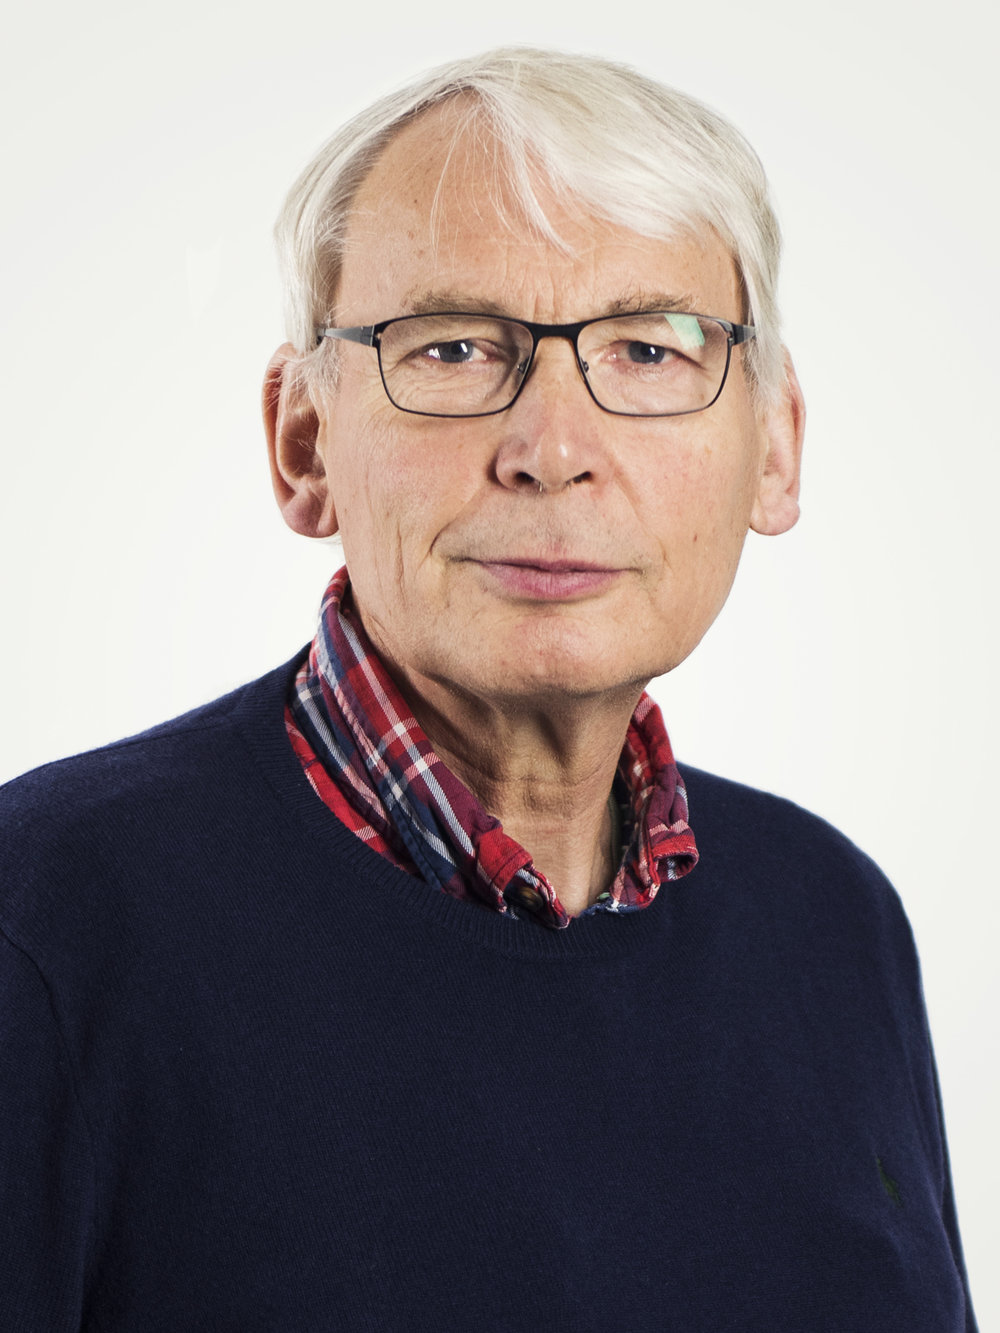 Arne Mehl MD PhD - Senior Consultant in Infectious Diseases Levanger Hospital